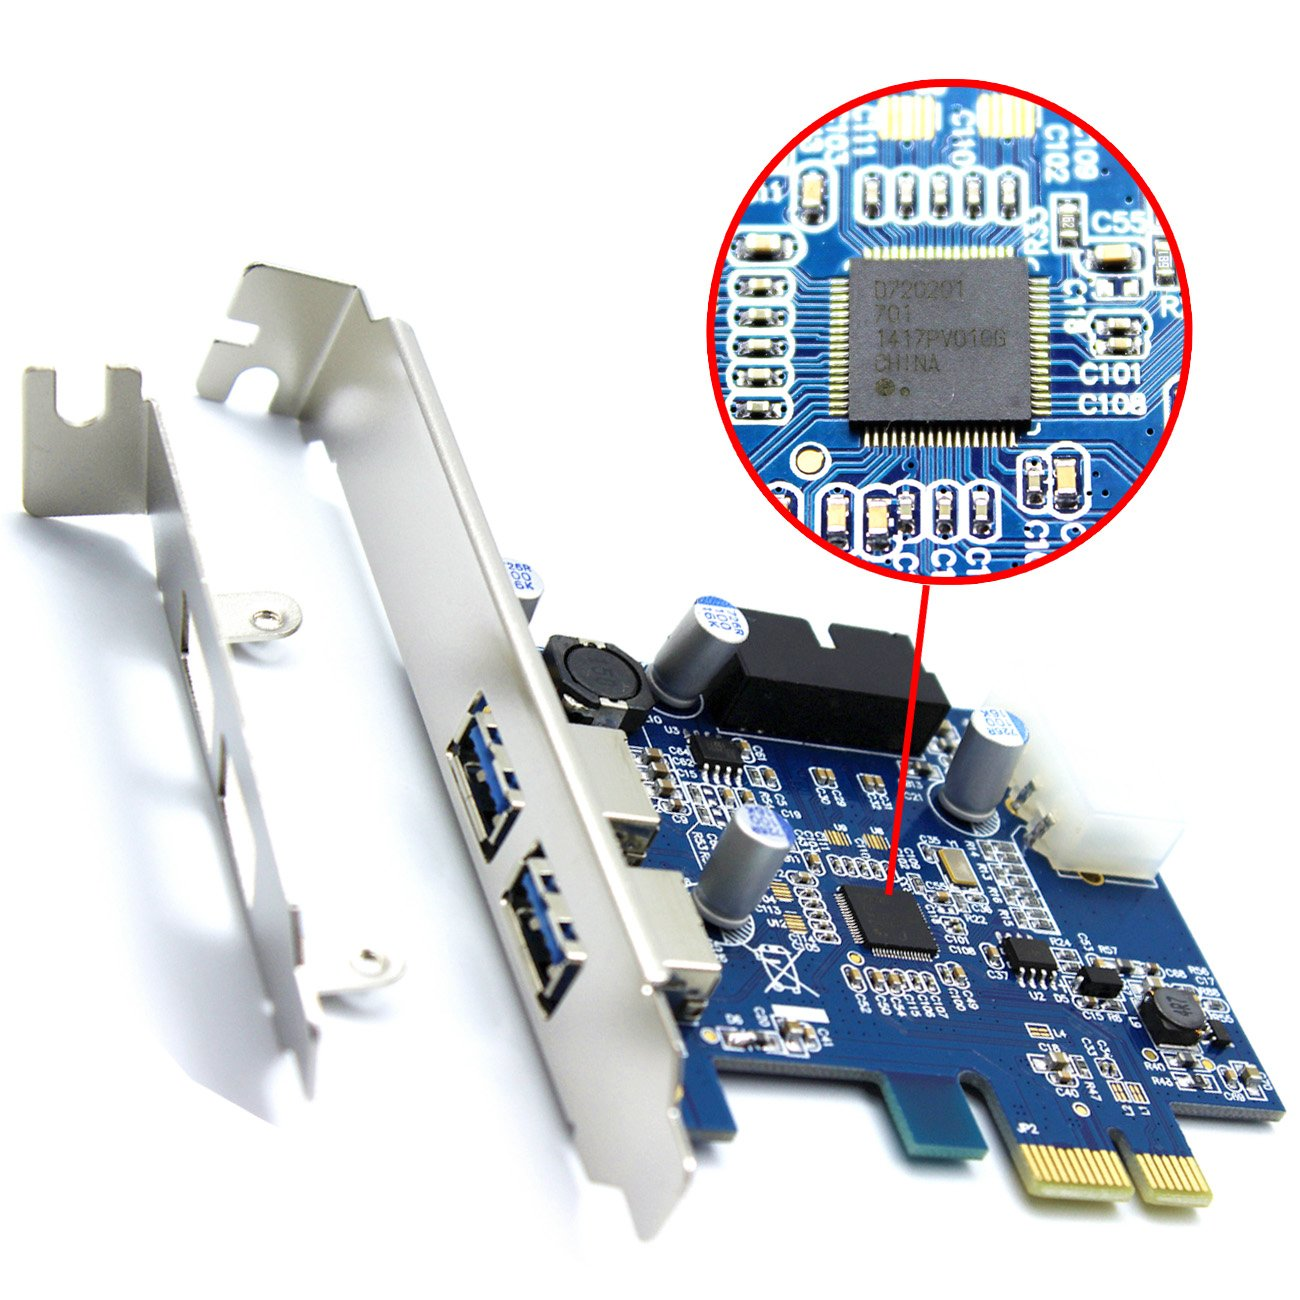 Optiaml Shop 2 Port USB 3.0 PCI Express Card,Mini PCI-E USB